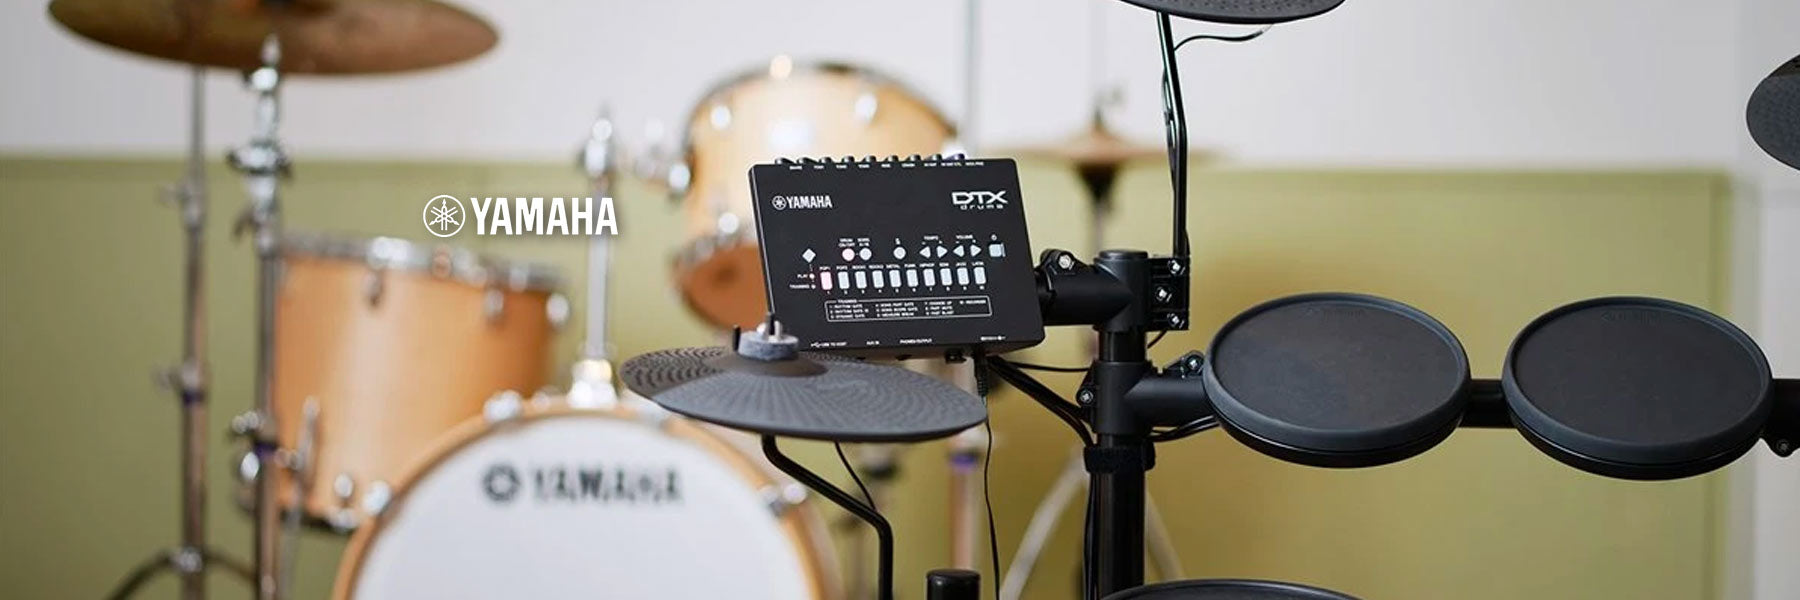 Yamaha Drums, Percussion & Accessories